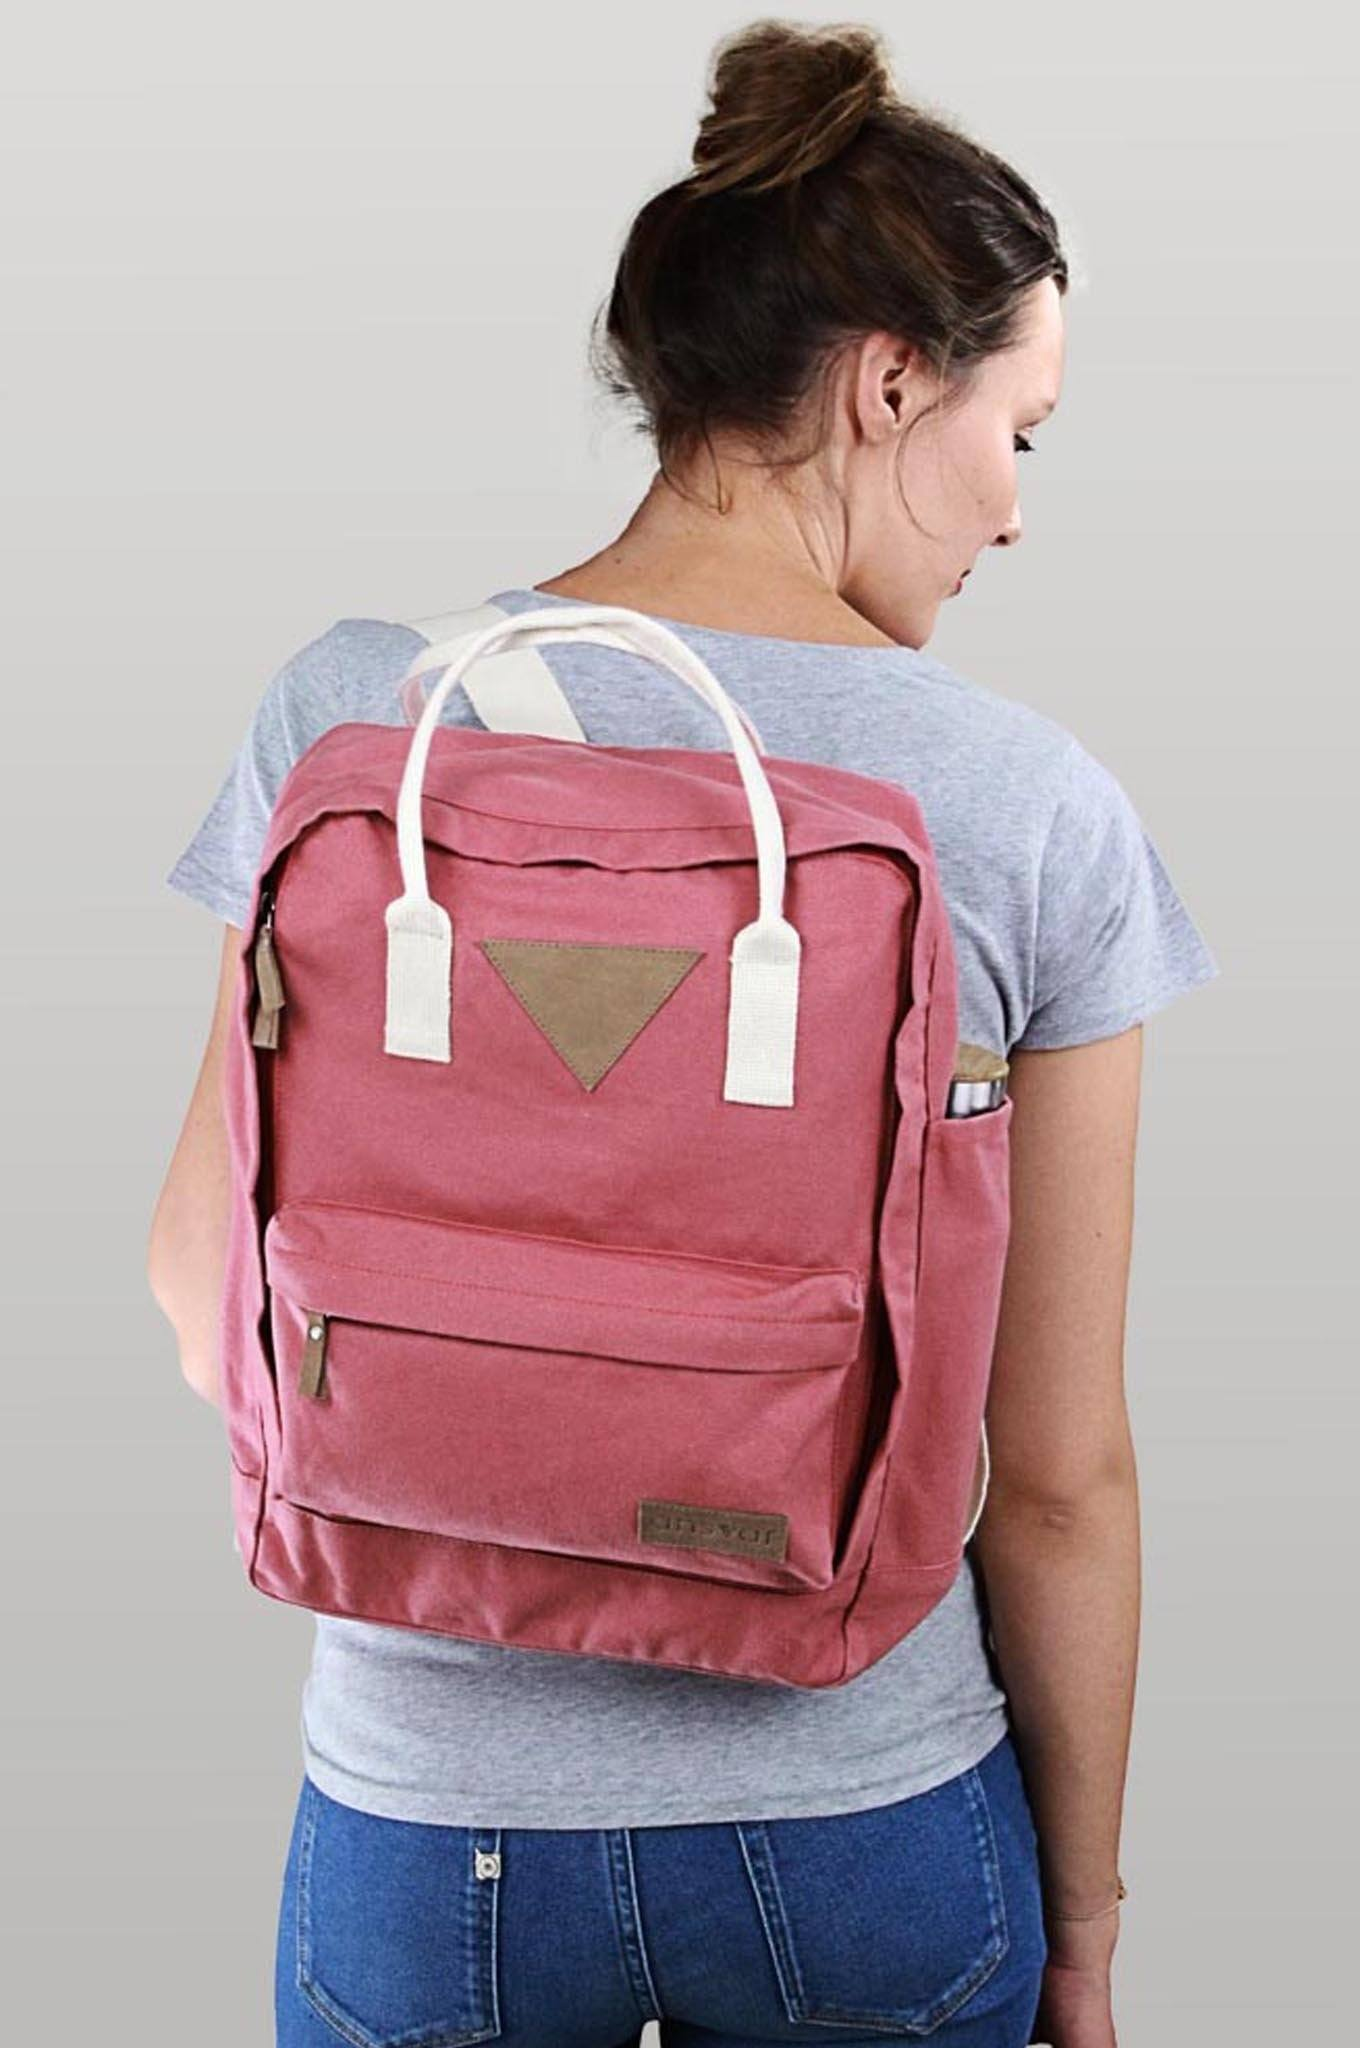 Backpack Ansvar II Vintage Red - Komodo Fashion